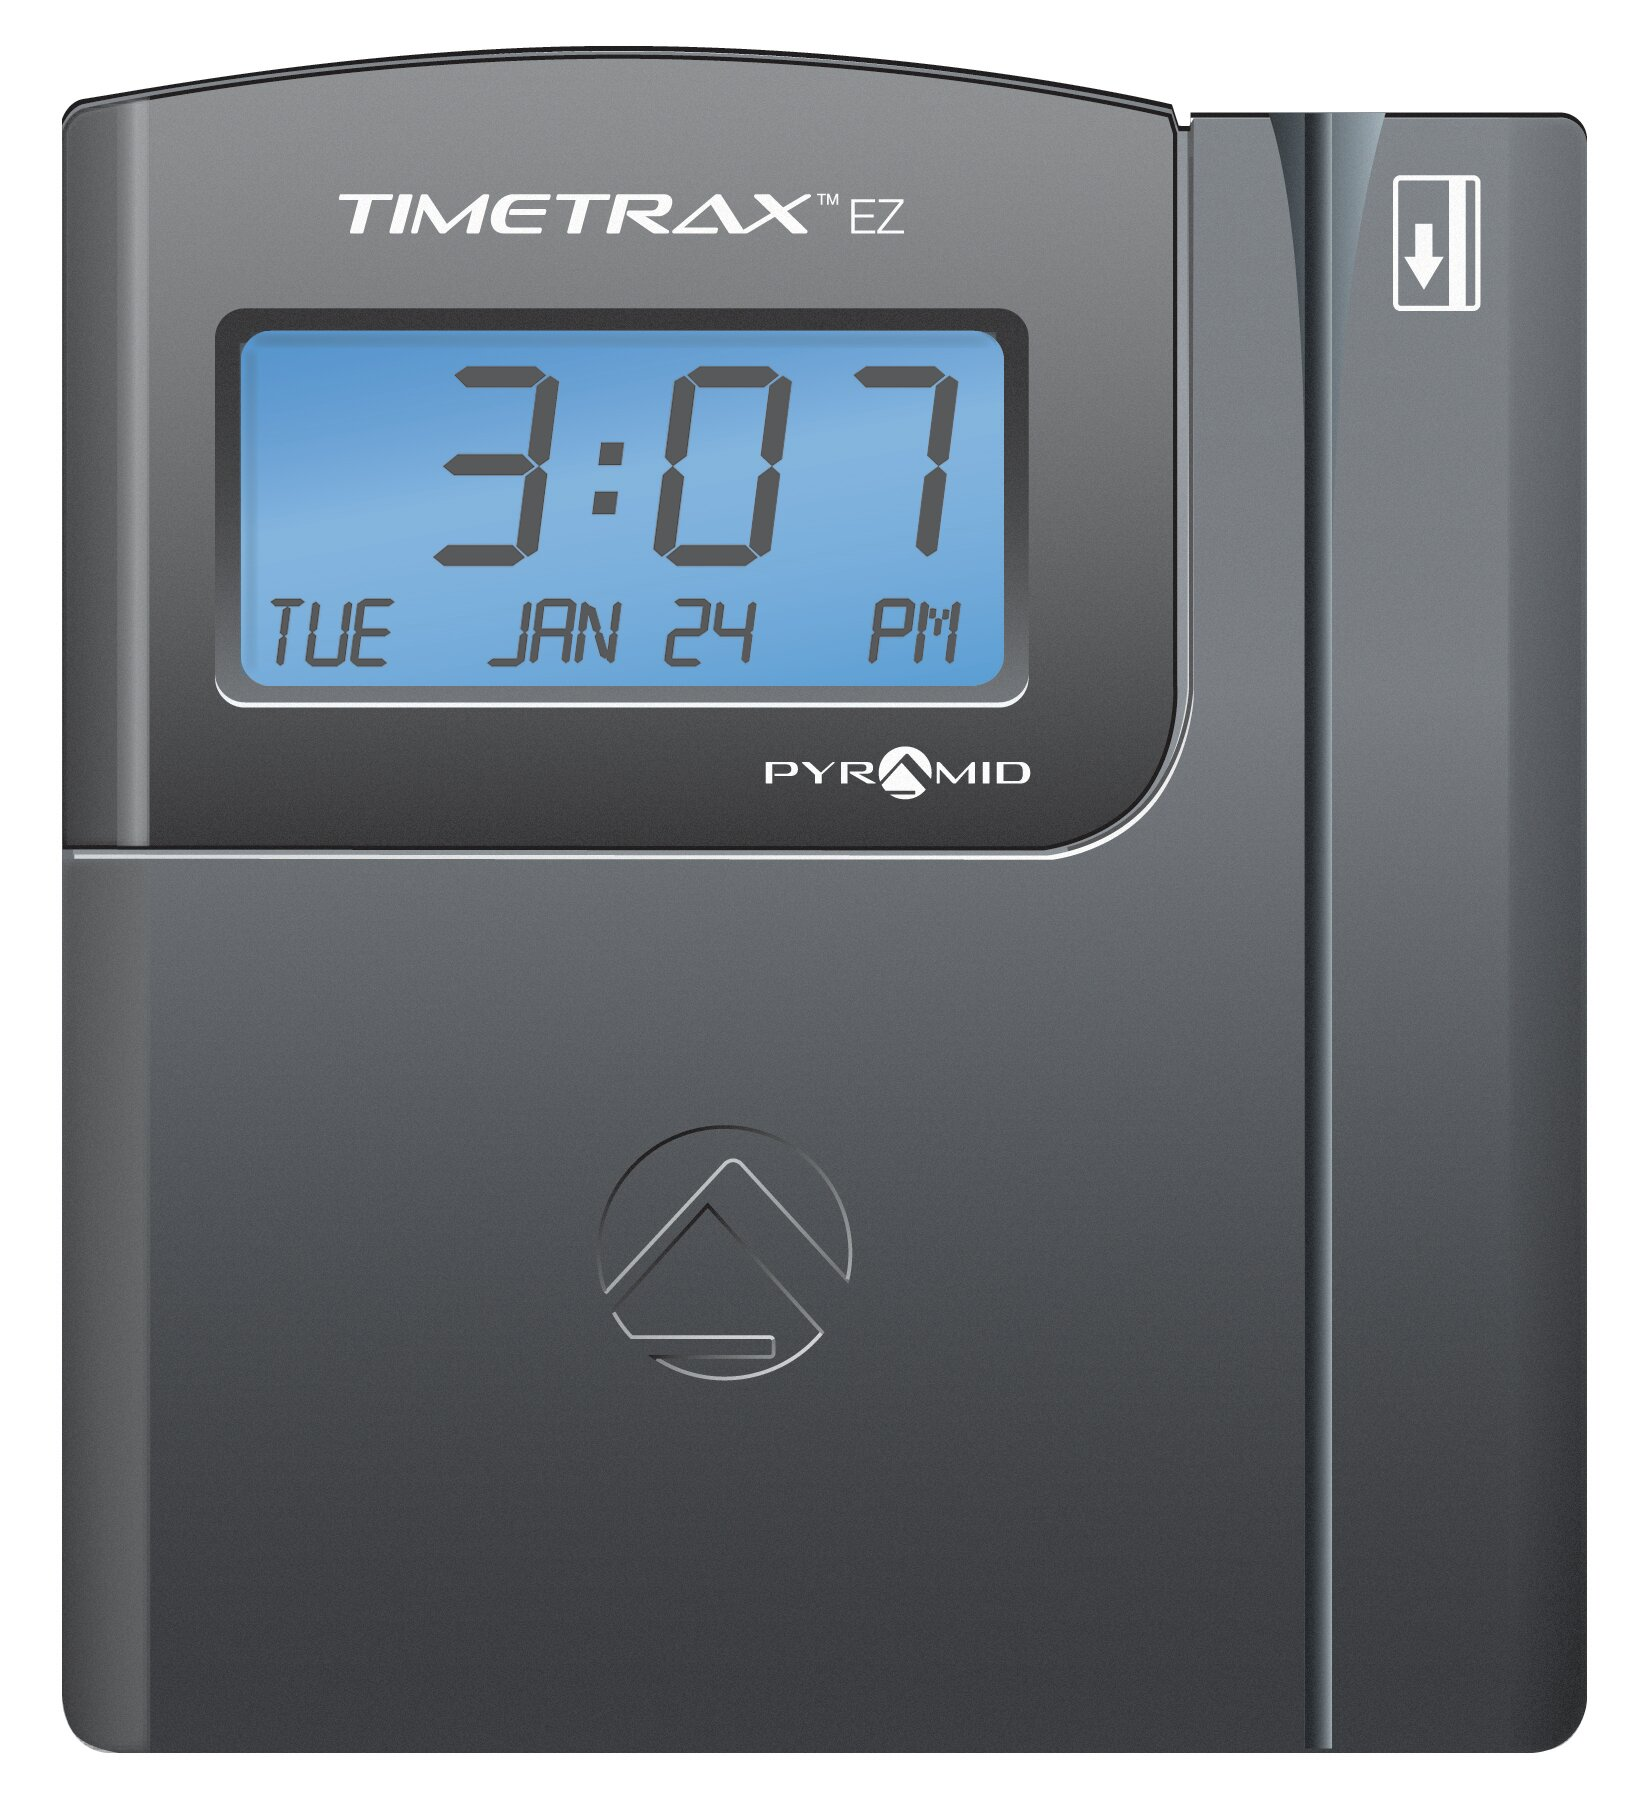 Pyramid Time Trax TTEZ Automated Swipe Card Time Clock ...